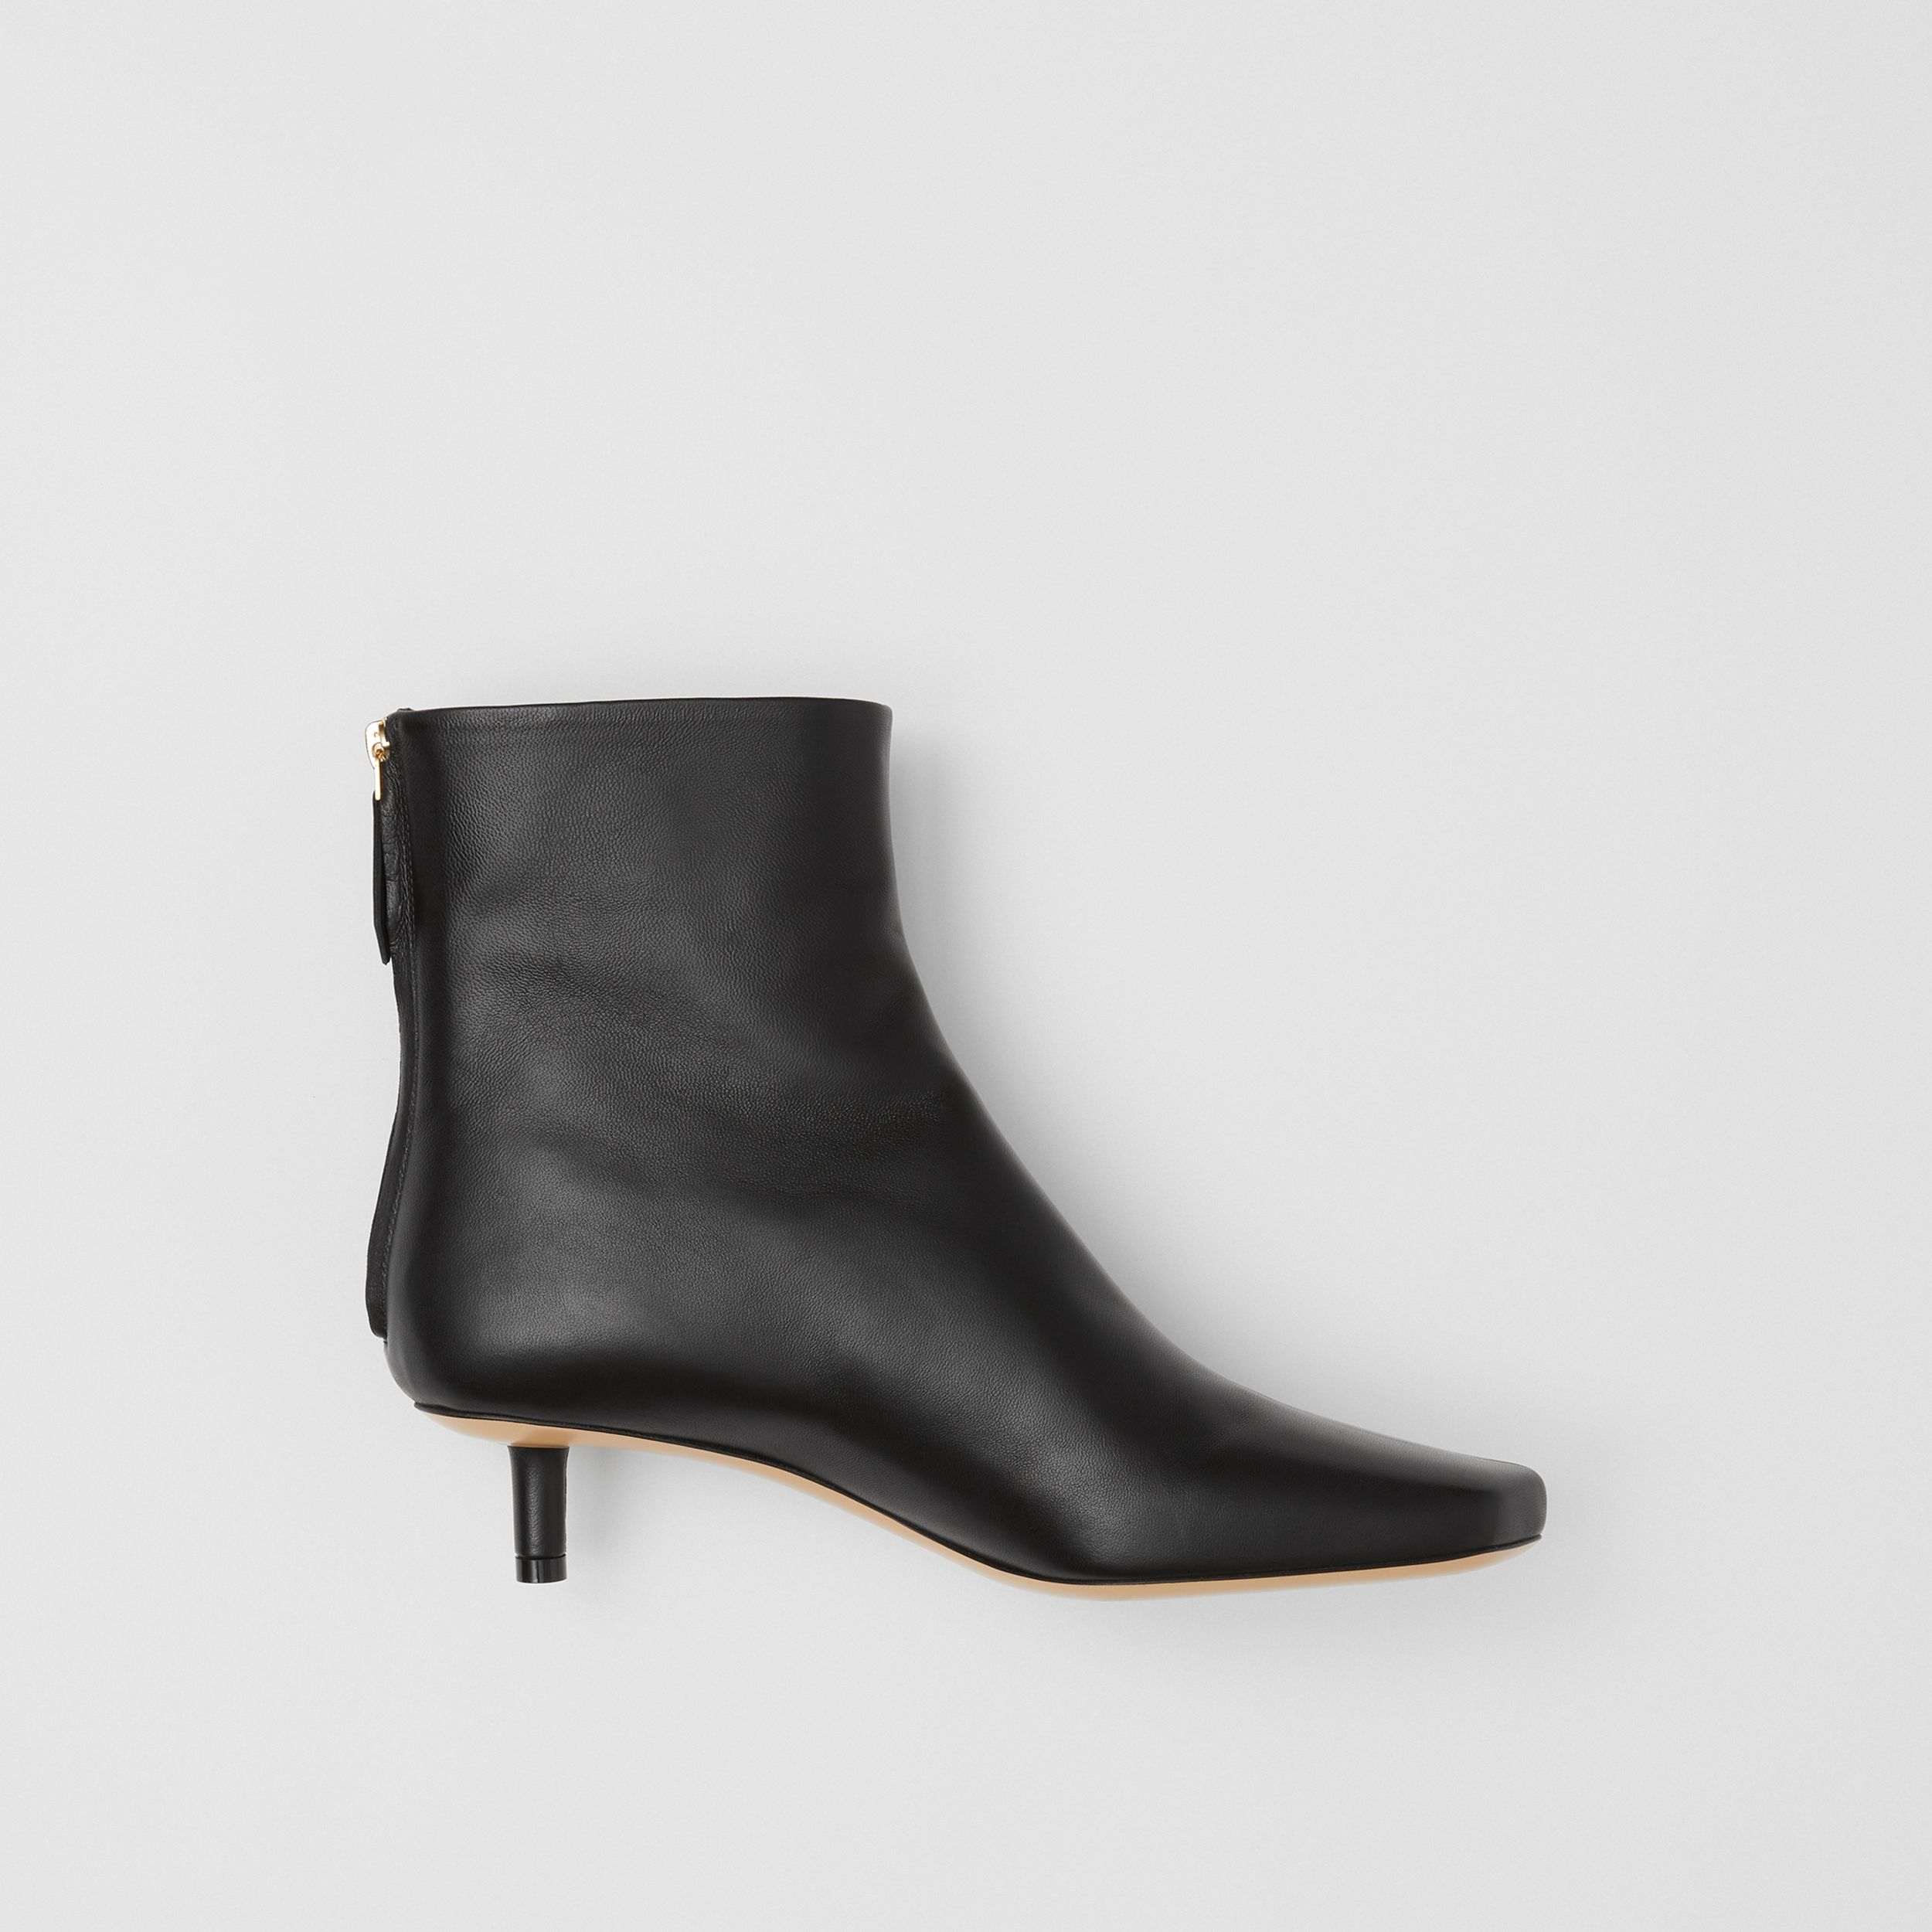 Lambskin Sculptural Kitten-heel Ankle Boots in Black - Women | Burberry Canada - 1